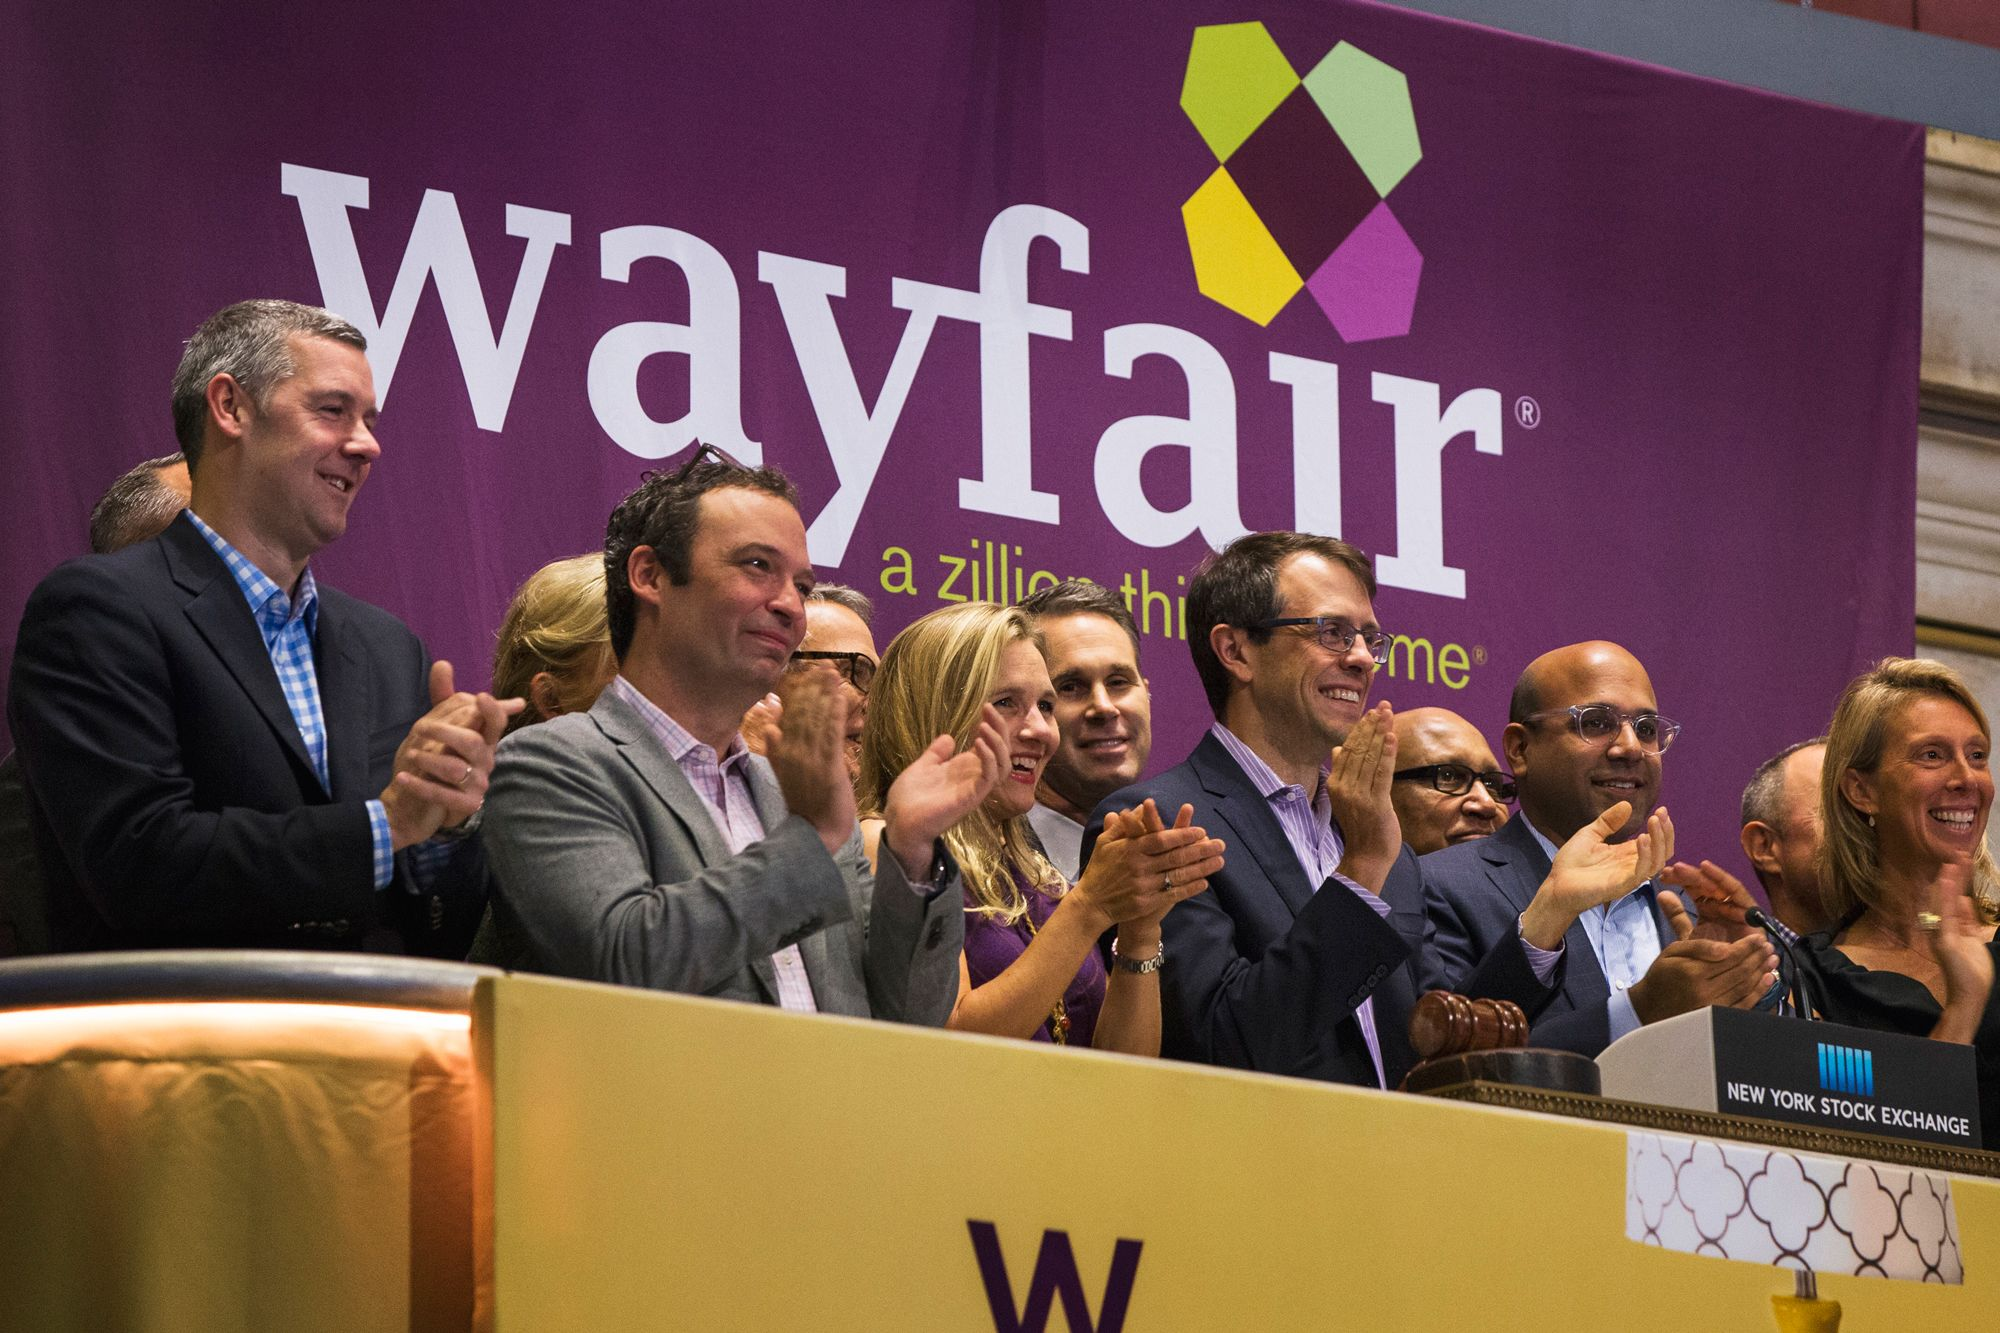 Wayfair employees protest apparent sale of childrens' beds to detention camp